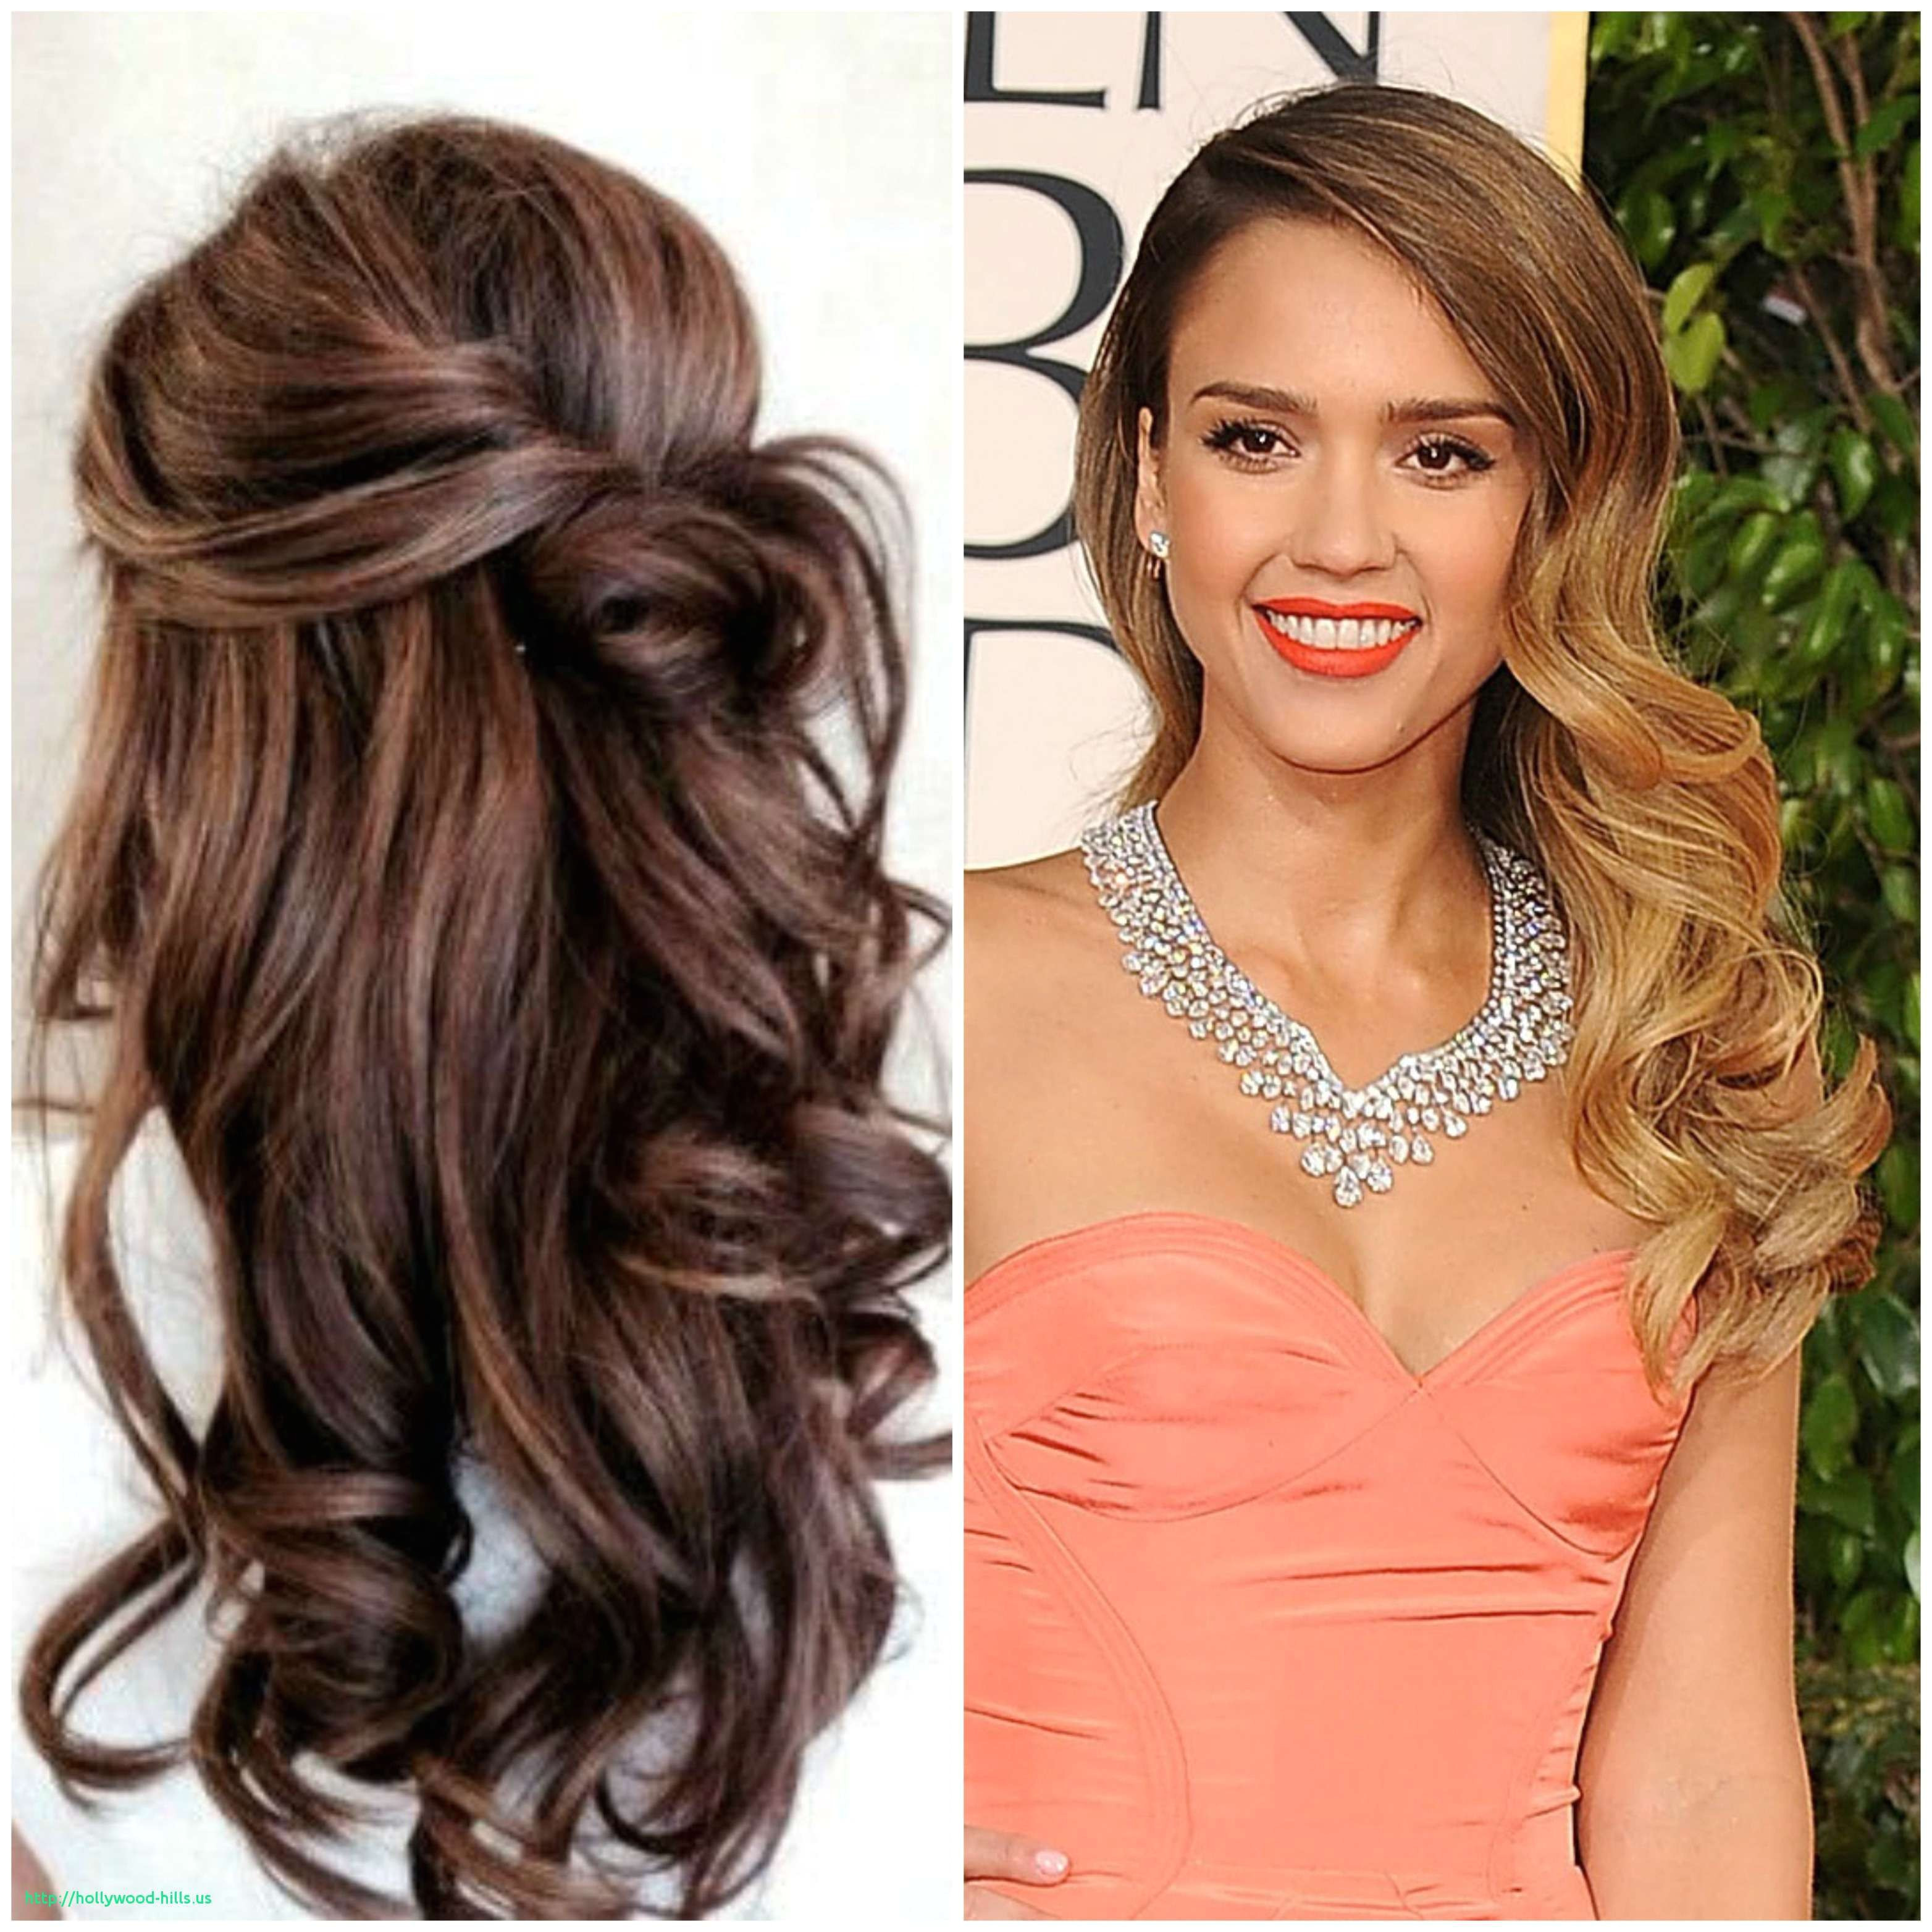 Hairstyles For Long Hair 2015 Luxury I Pinimg 1200x 0d 60 8a Furthermore Human Hair Color Snapshot Elegant Easy Hairstyles for Short